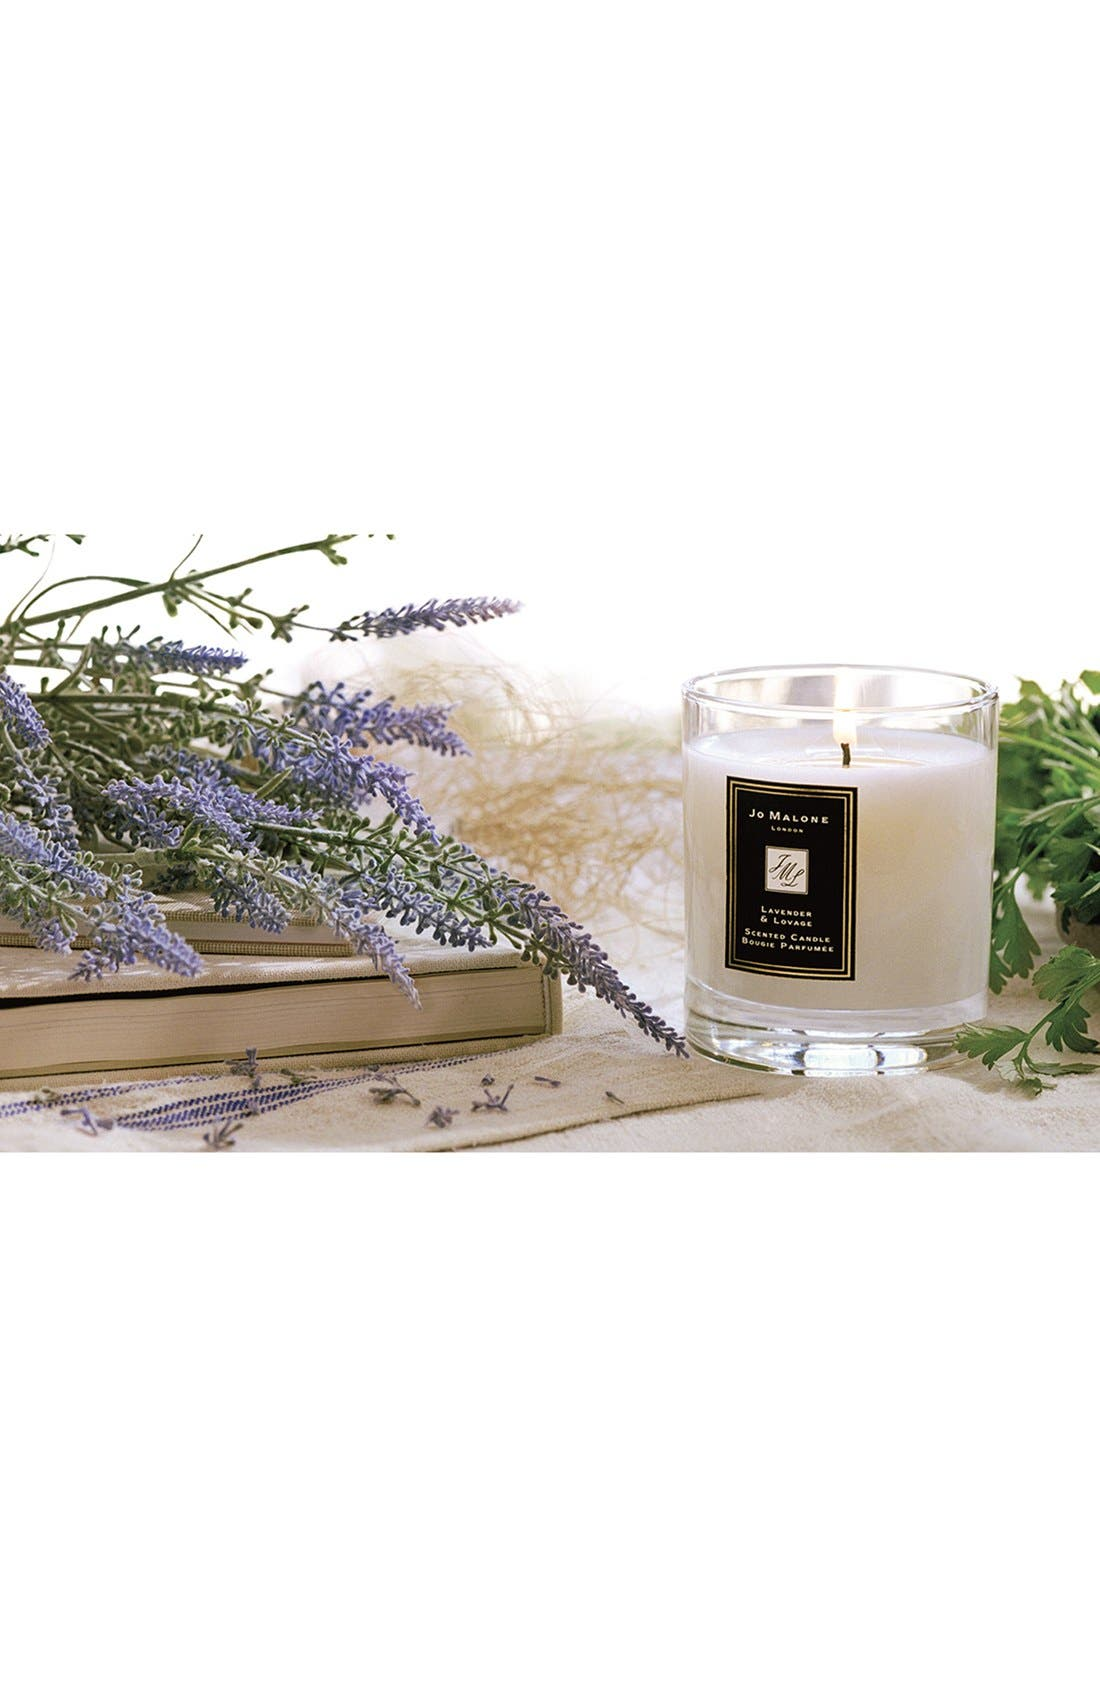 Jo Malone<sup>™</sup> Just Like Sunday - Lavender & Lovage Candle,                             Alternate thumbnail 4, color,                             NO COLOR